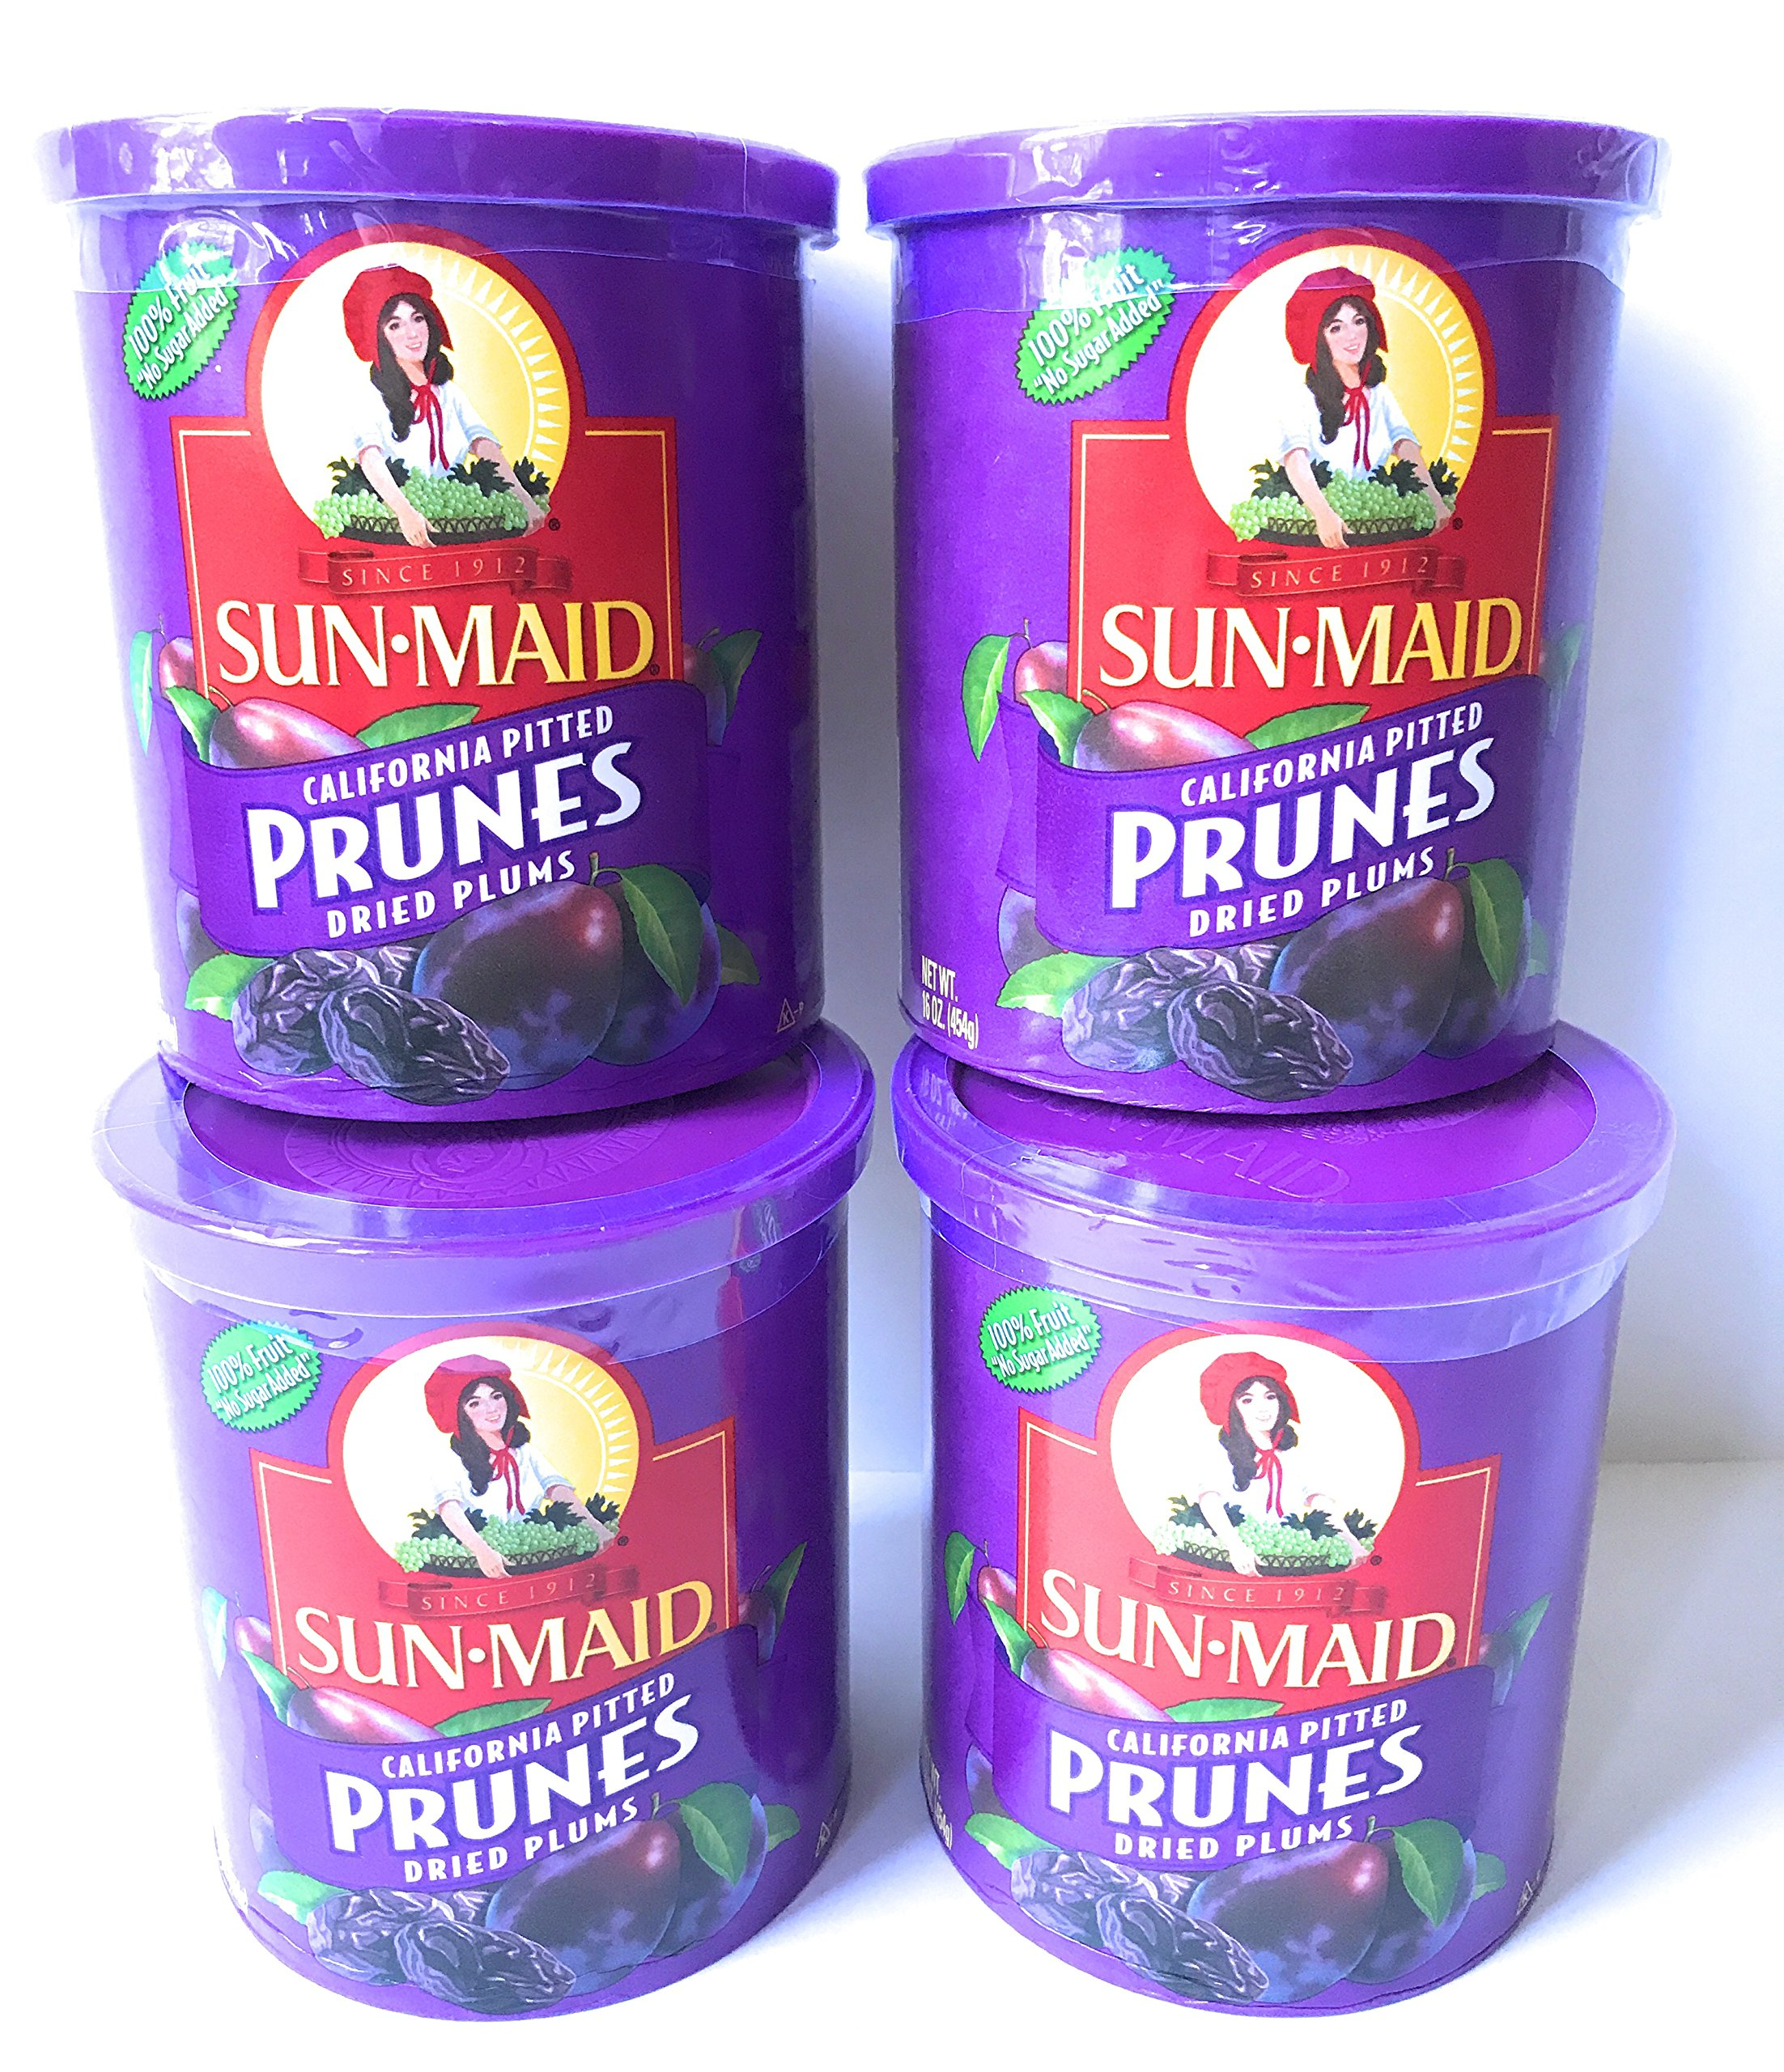 Sun Maid Pitted Prunes - 4 16 oz Canisters of Delicious Dried Prunes - GREAT VALUE by SunMaid (Image #4)